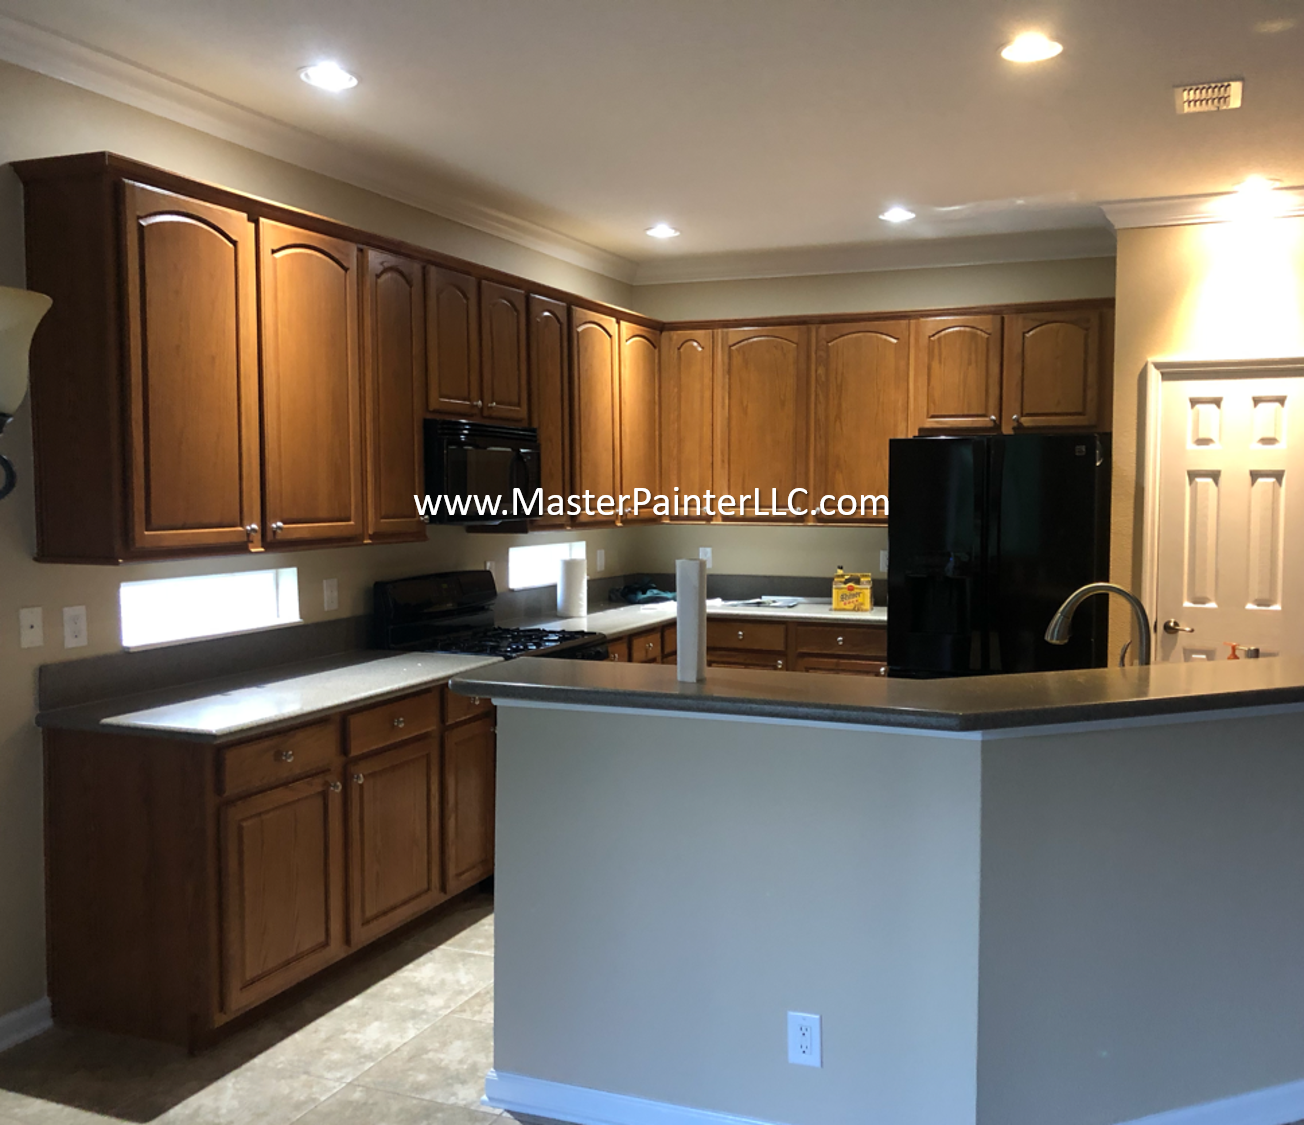 Kitchen walls and trim